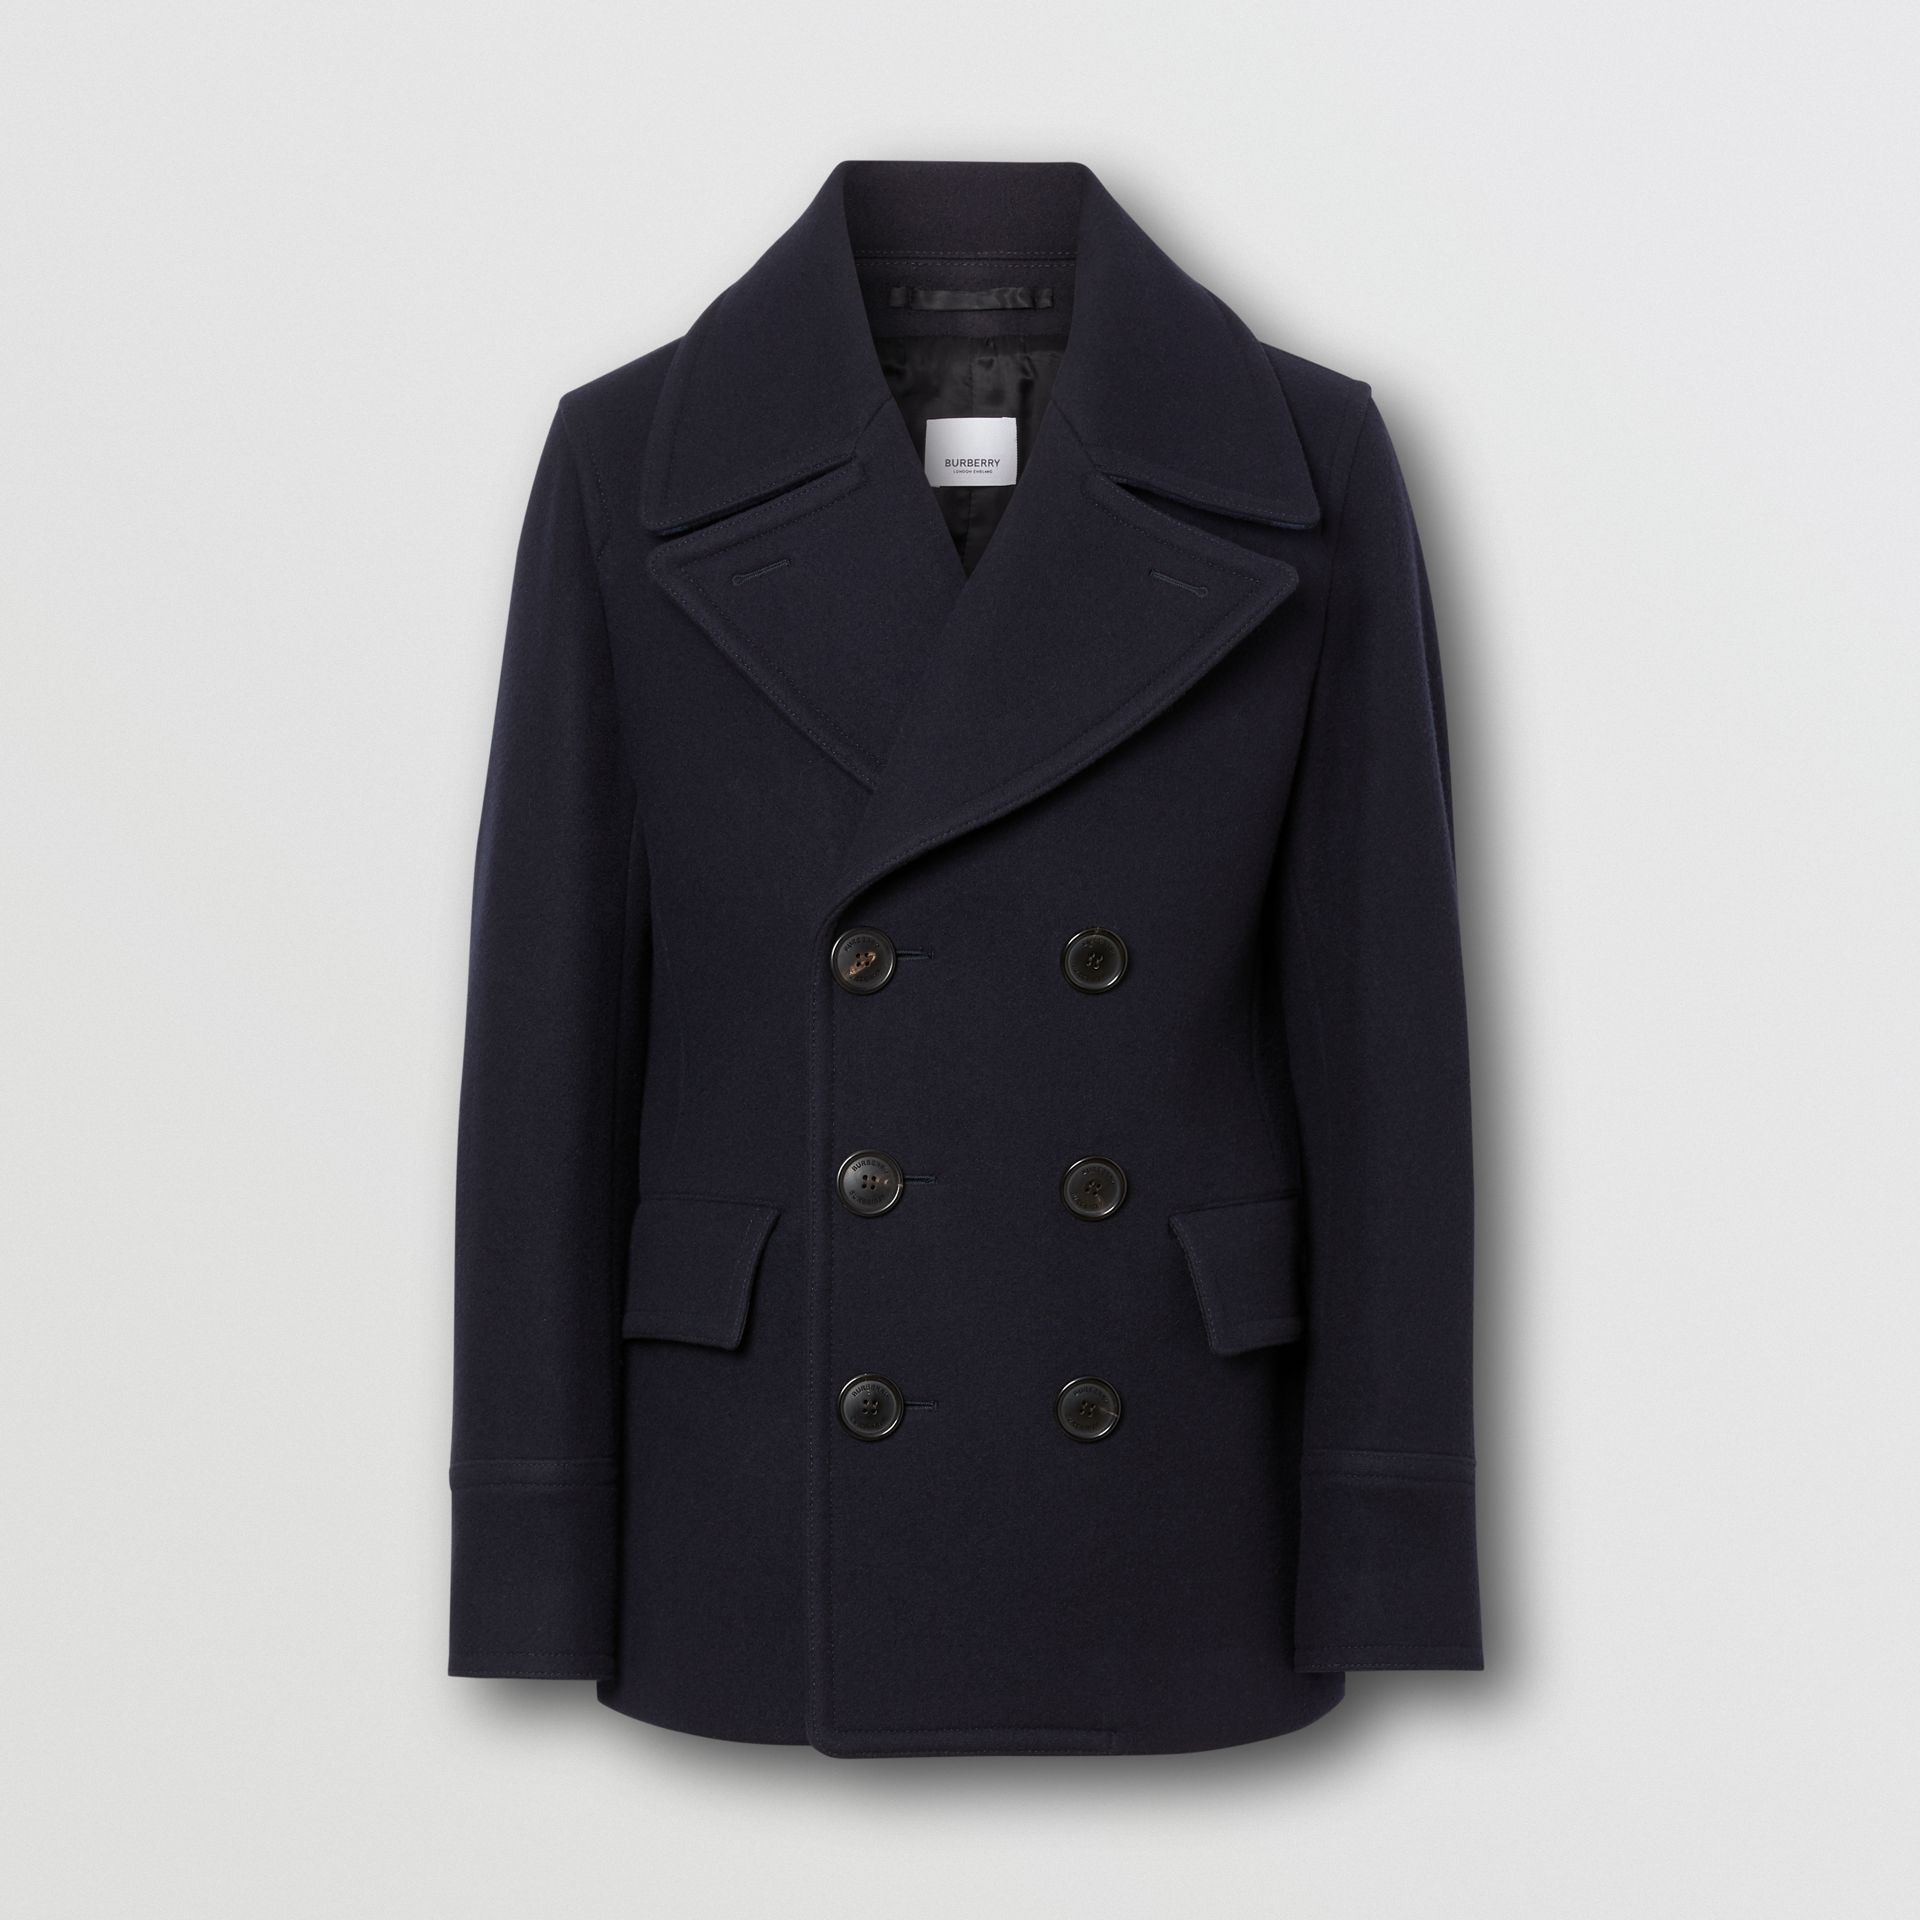 Wool Blend Pea Coat in Navy - Men | Burberry United States - gallery image 3